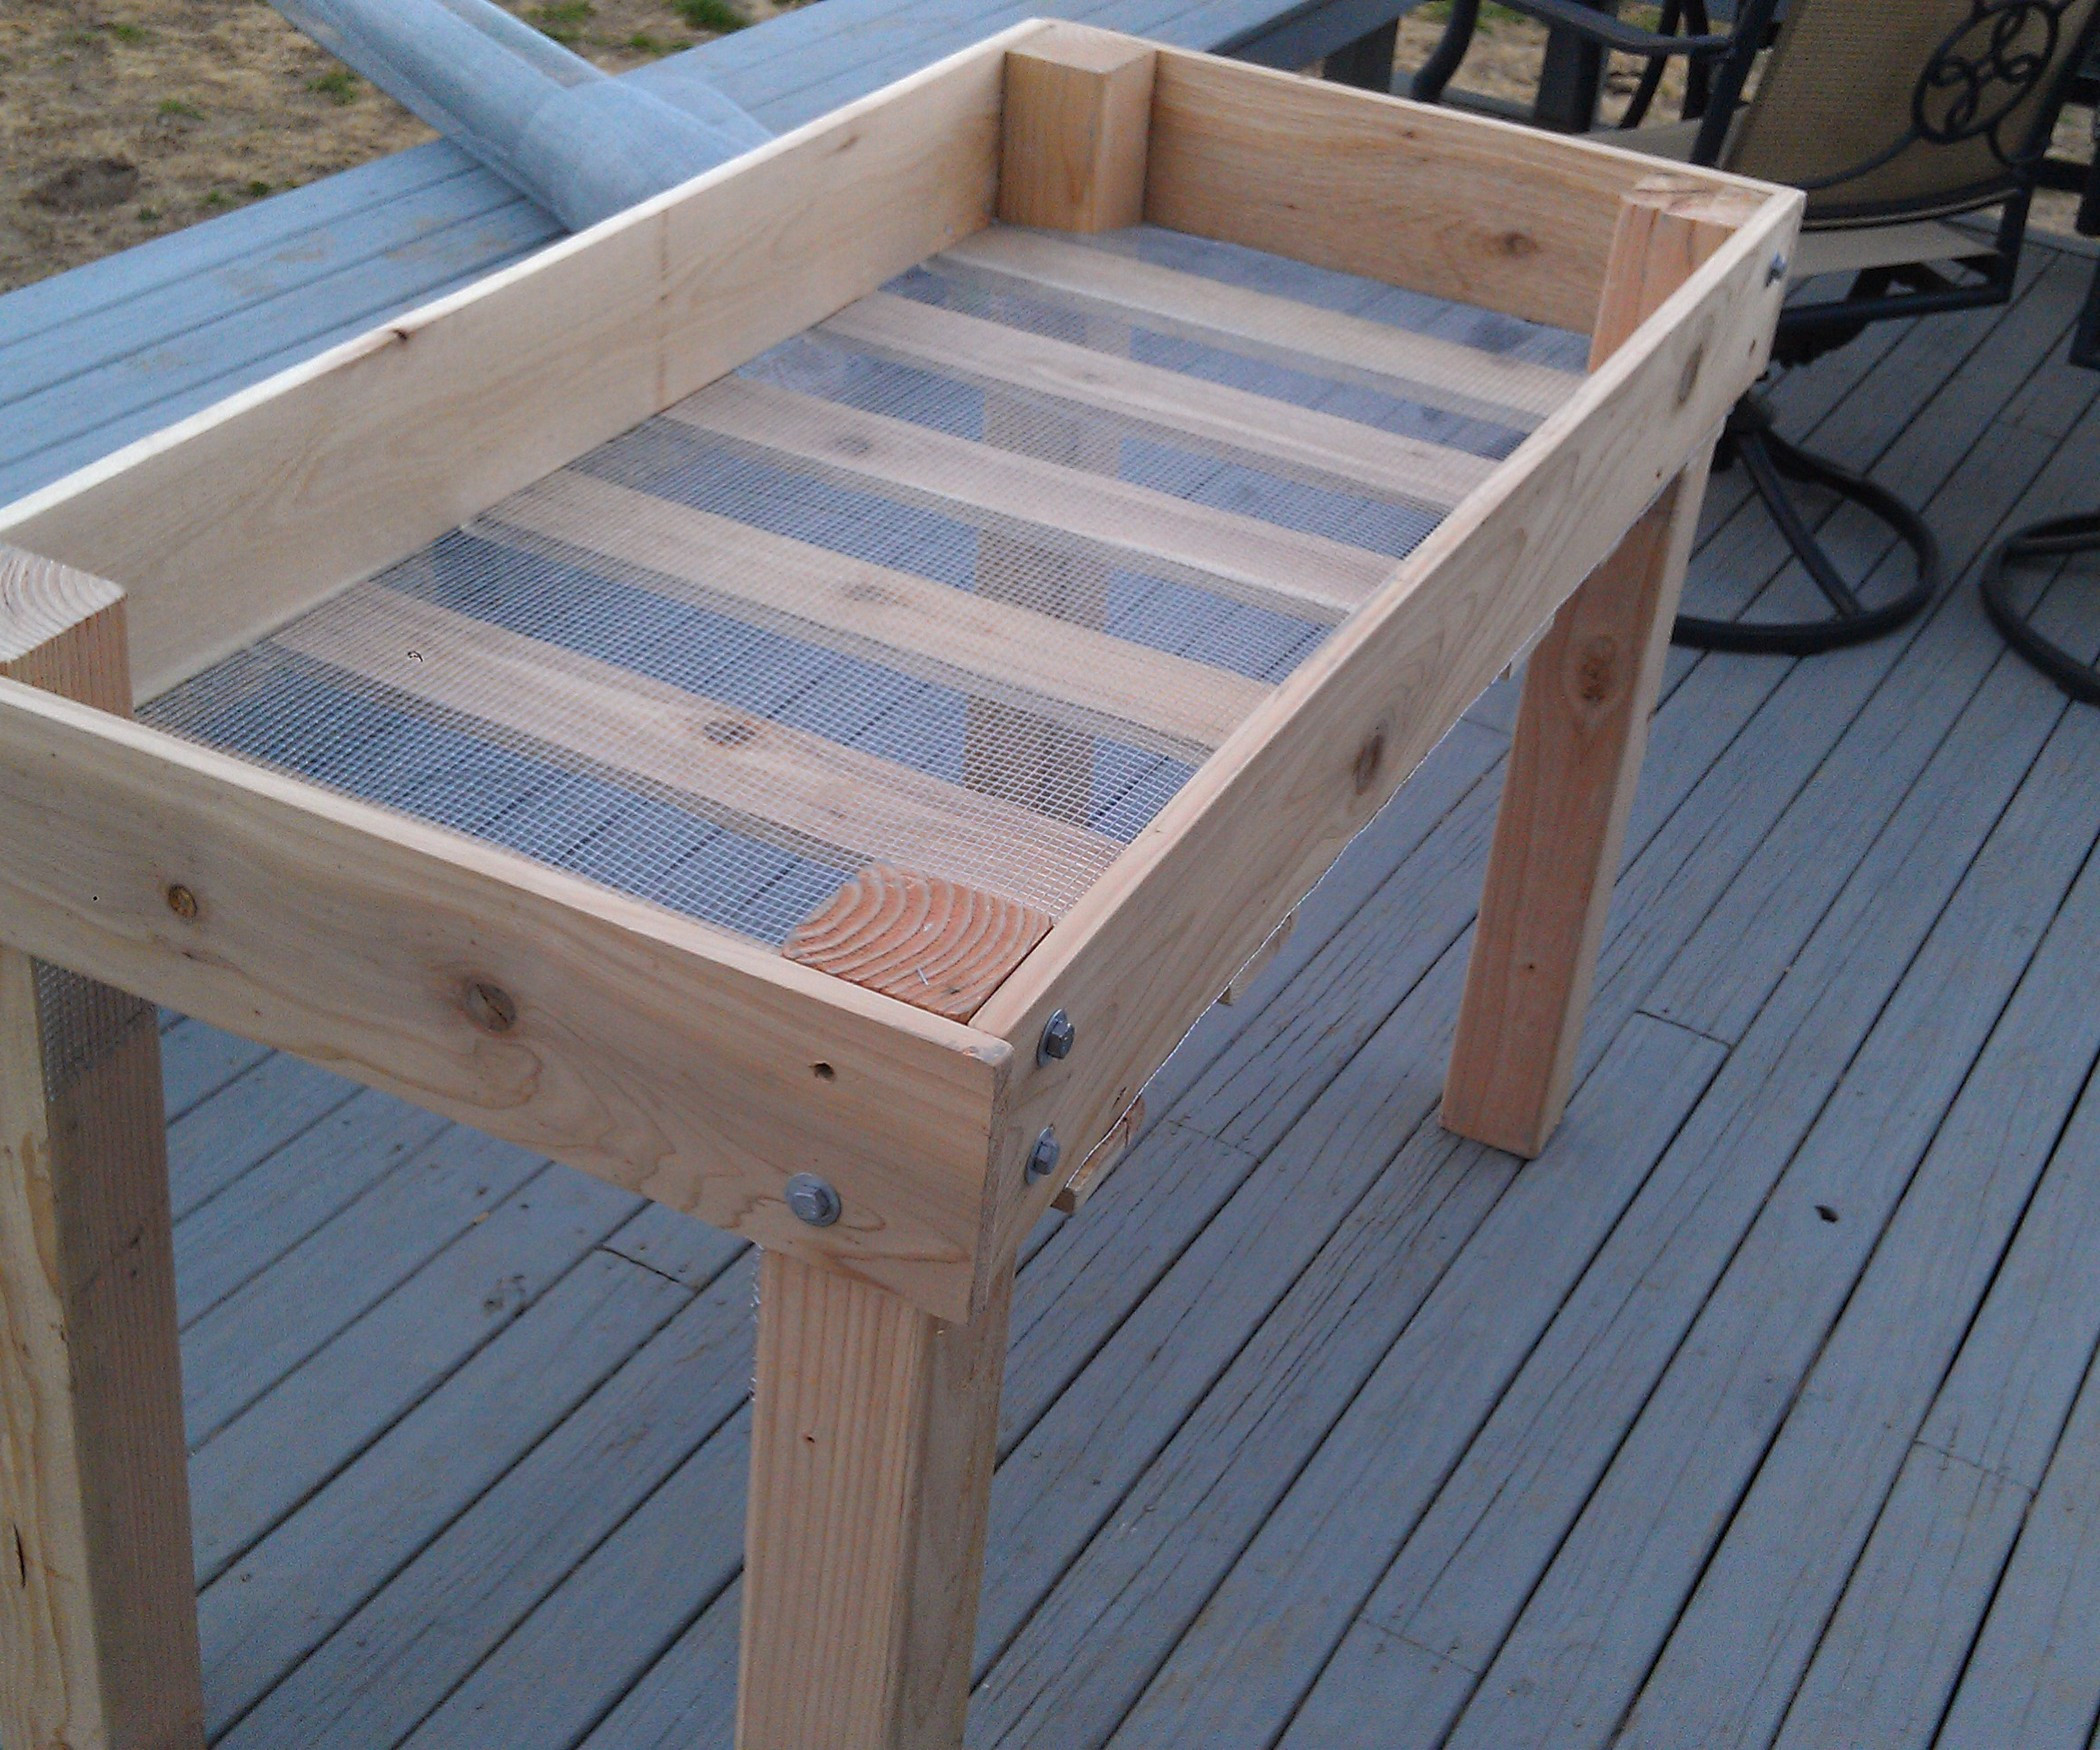 Best ideas about Raised Garden Planters . Save or Pin DIY Raised Bed Planter 16 Steps with Now.